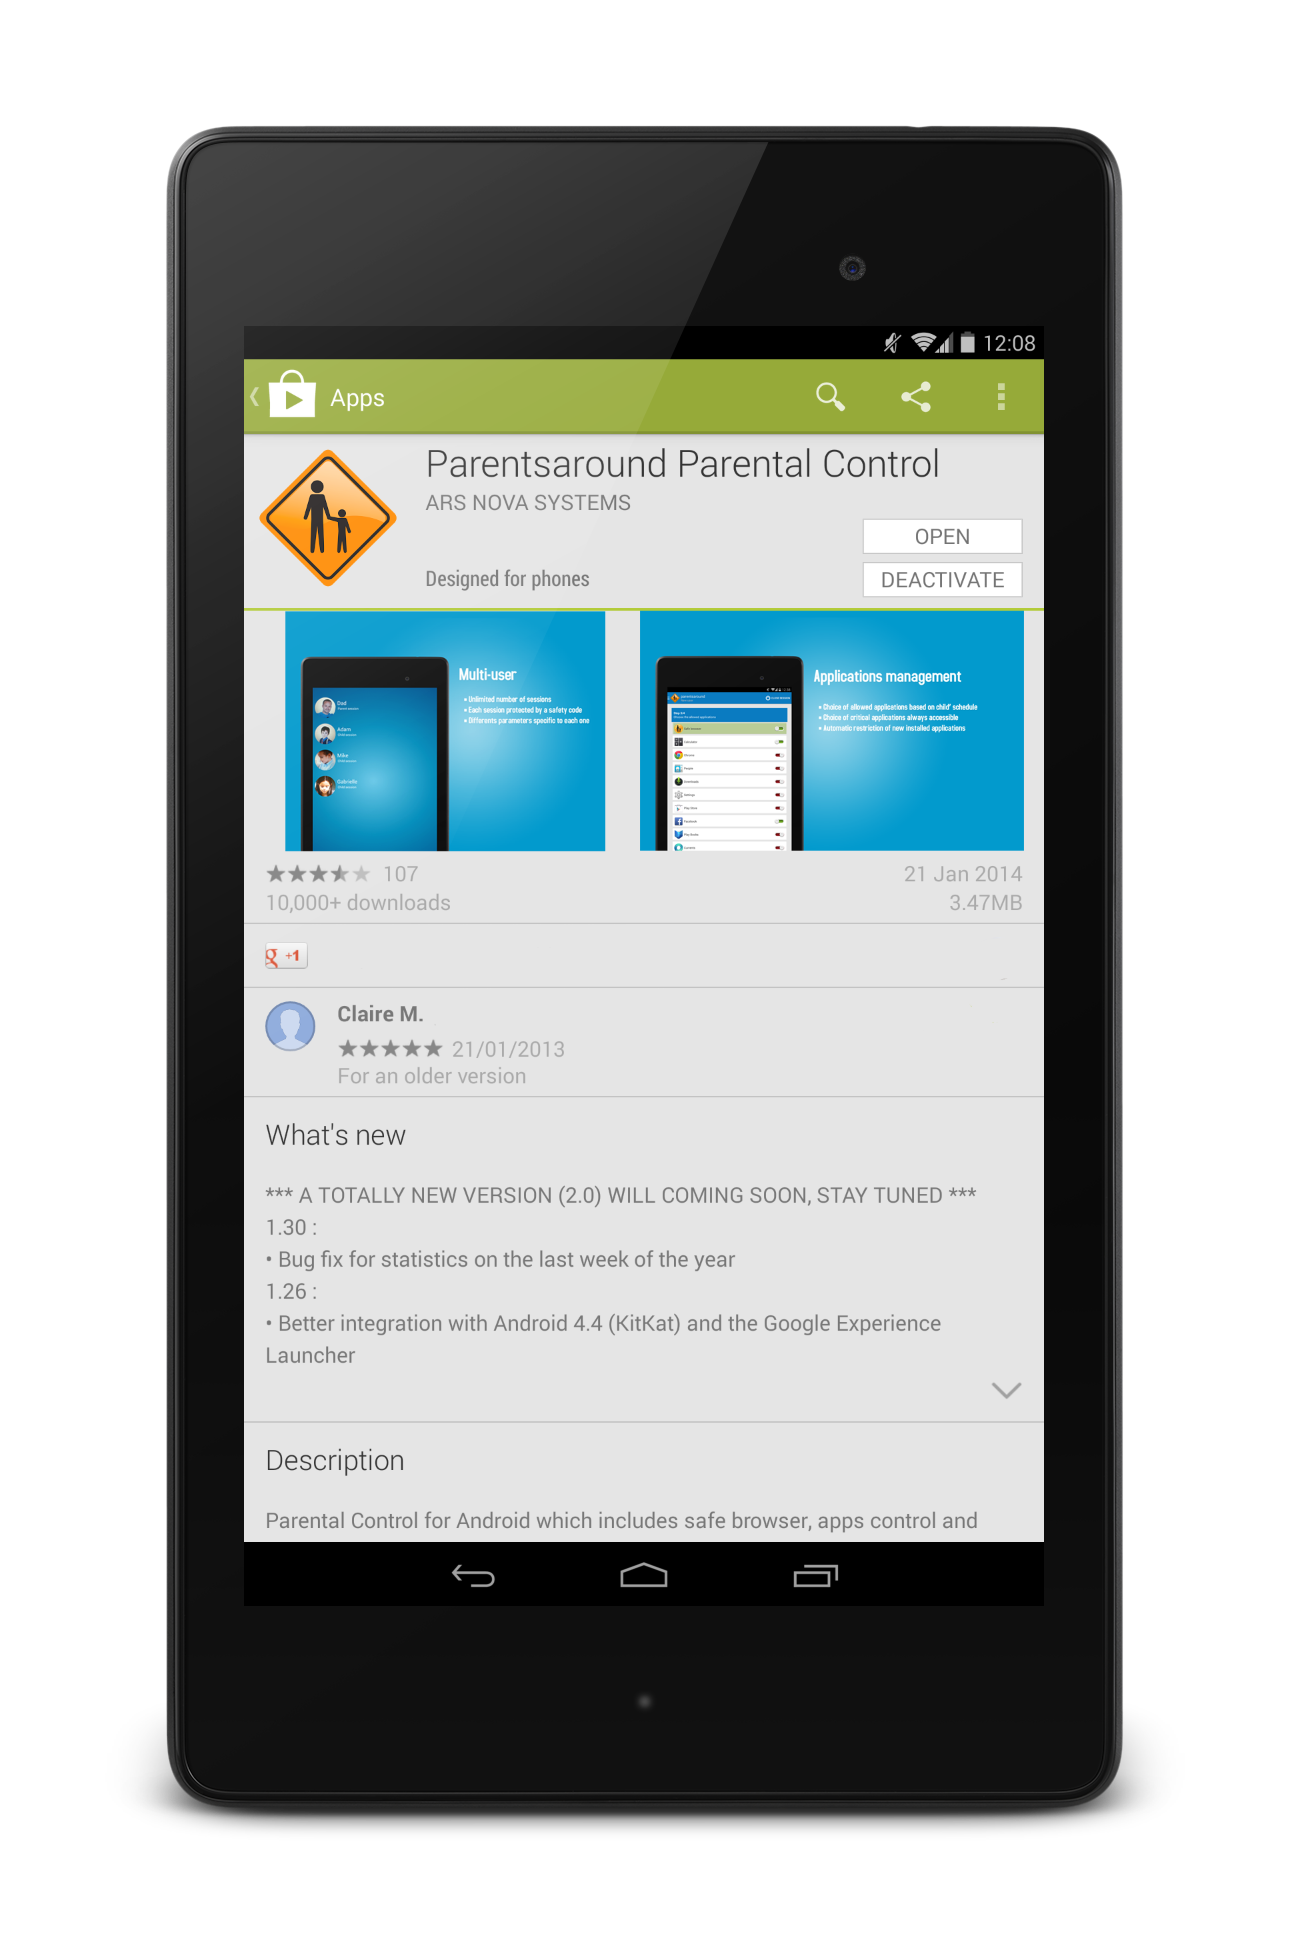 Parental control on Android - Parentsaround com